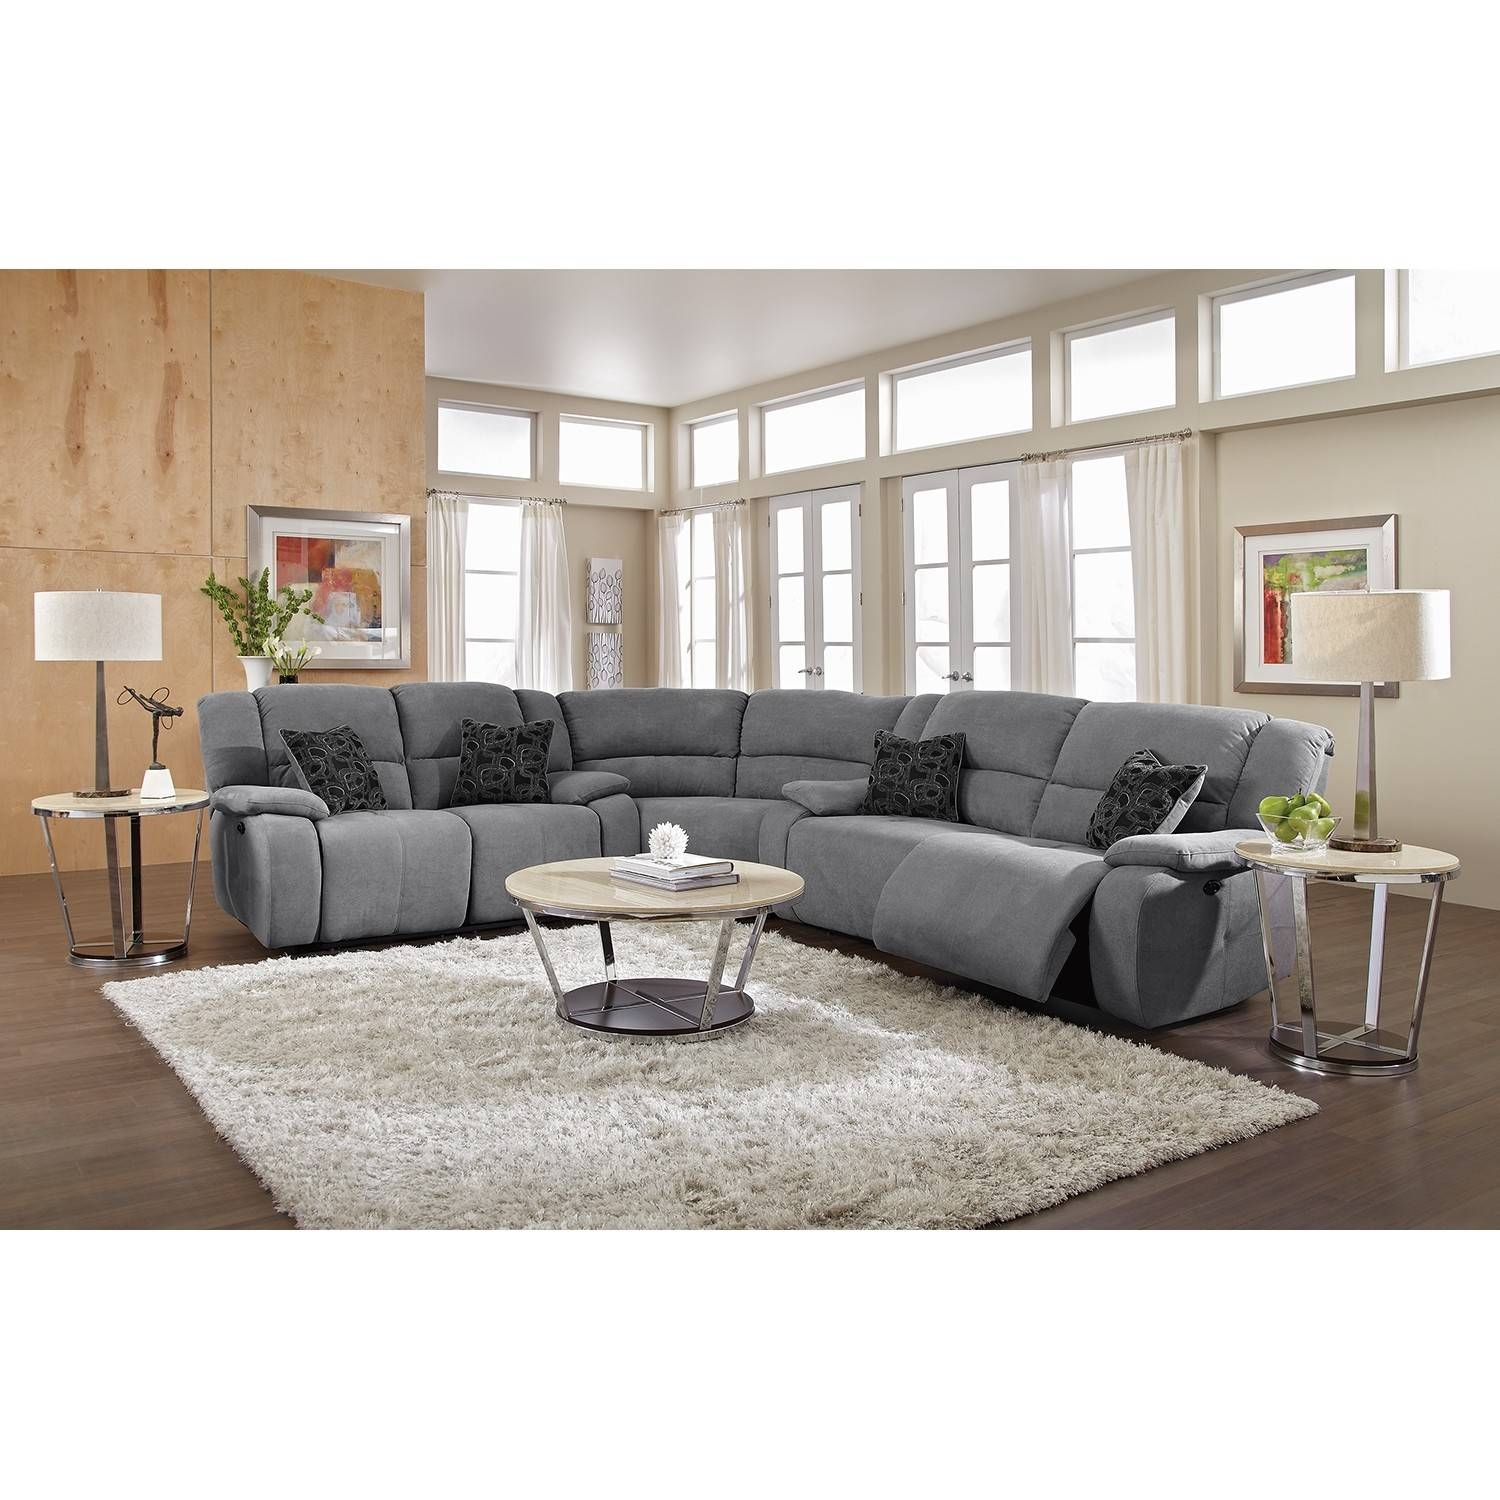 Living Room: Amazing Winsome Curved Sectional For Beautiful Living throughout Curved Sectional Sofa With Recliner (Image 20 of 30)